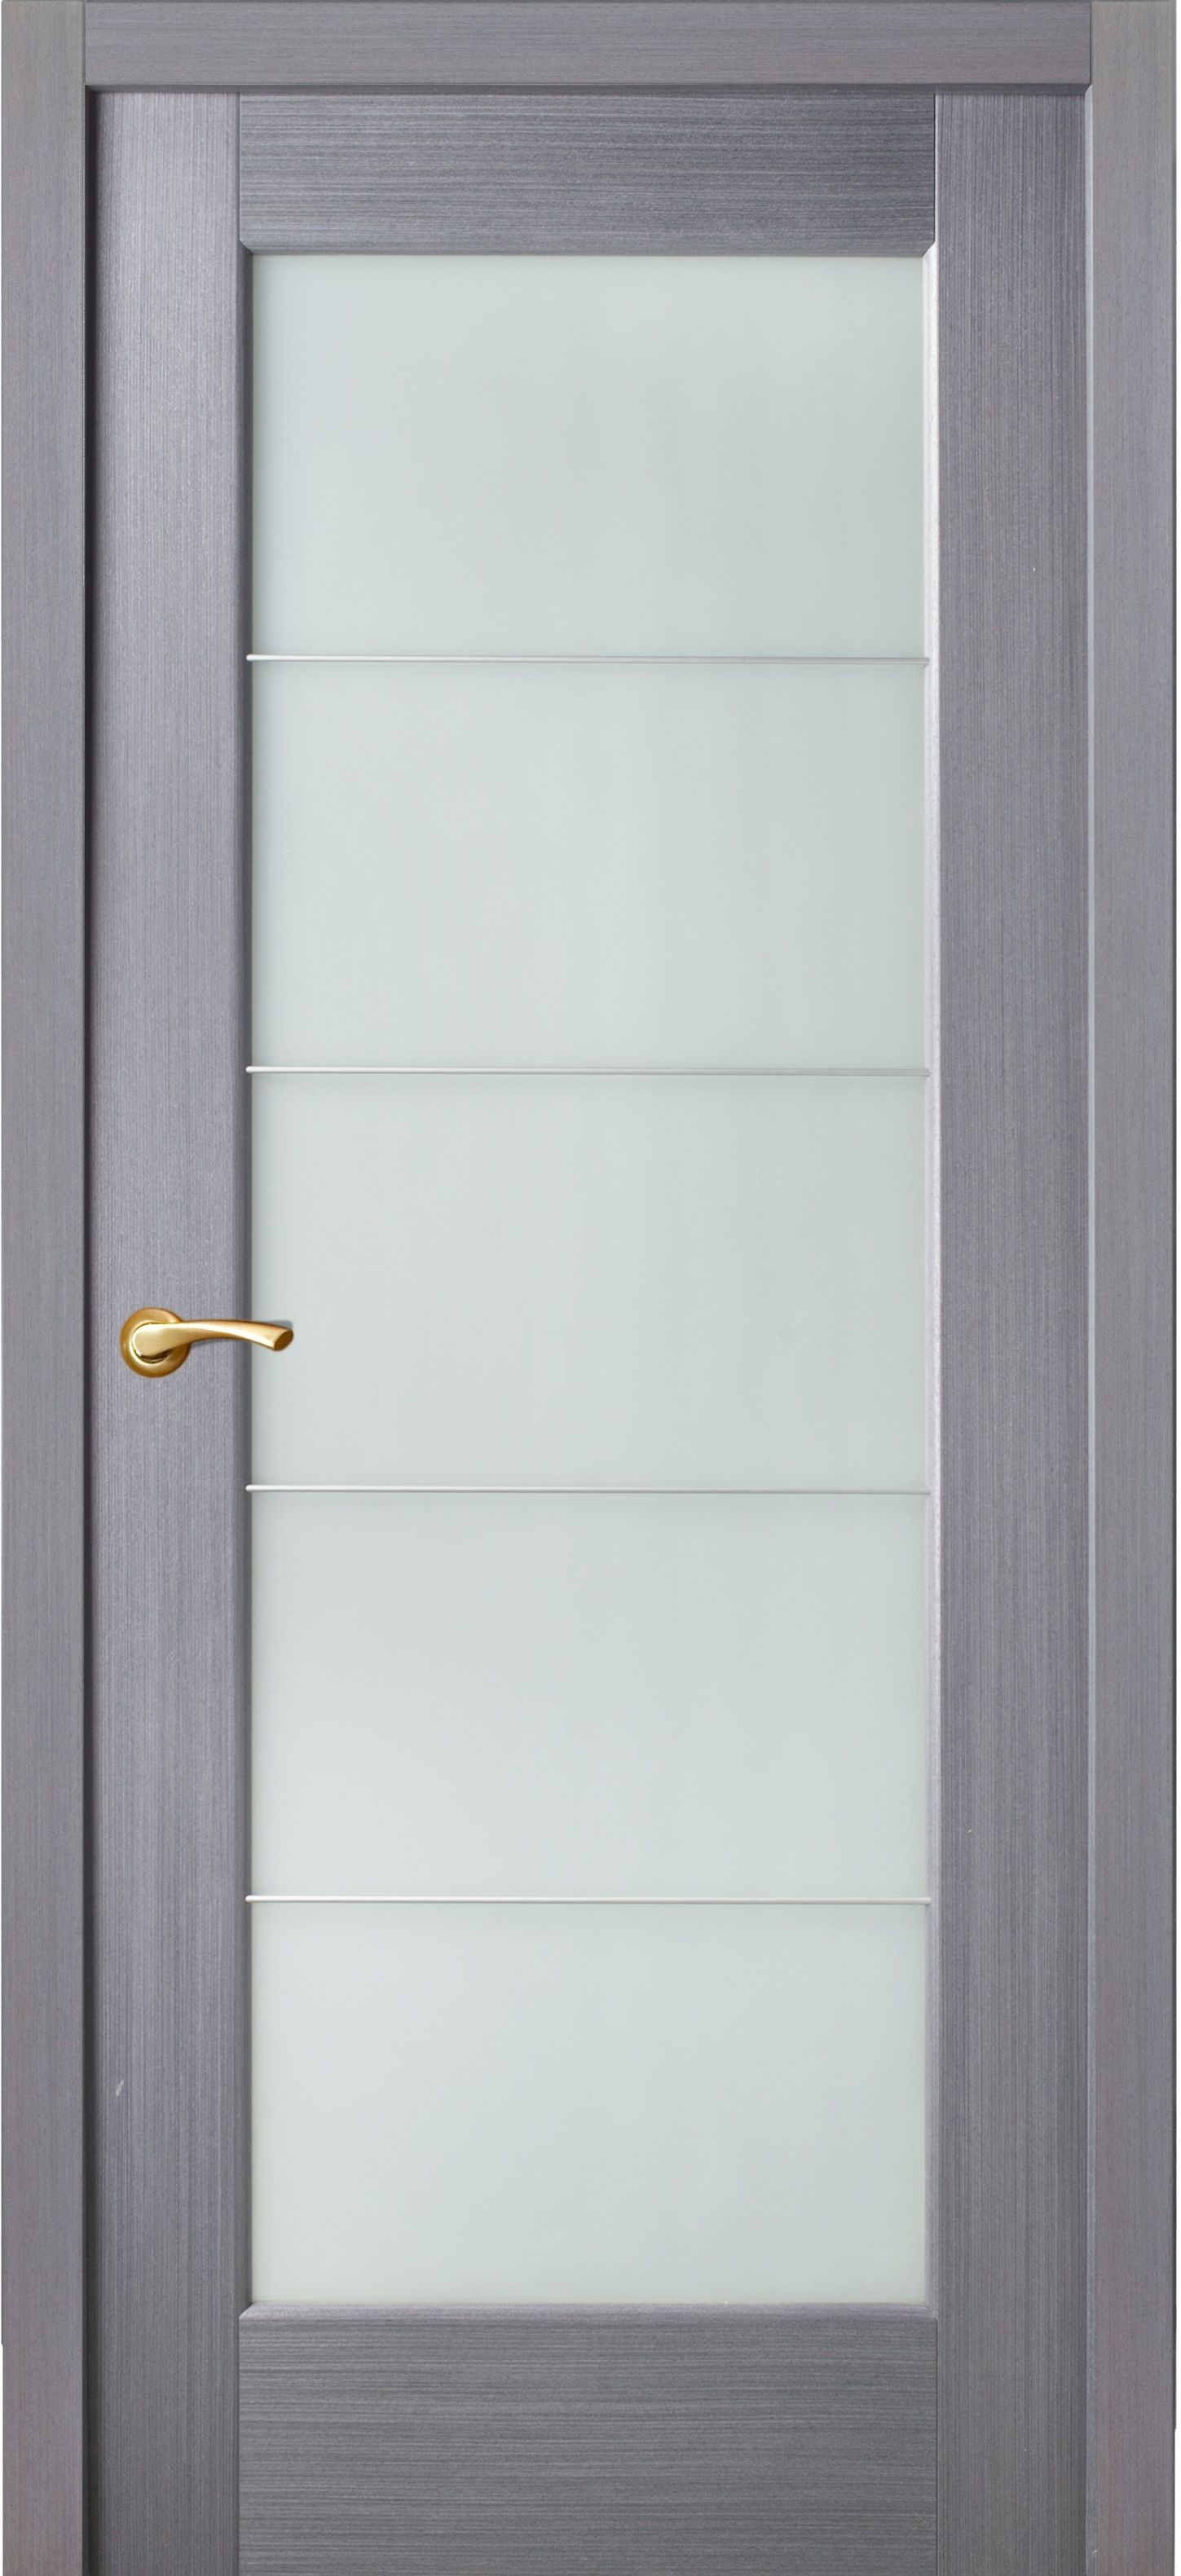 pilotproject panel entrance org doors five rustic bathroom entry door glass interior contemporary frosted